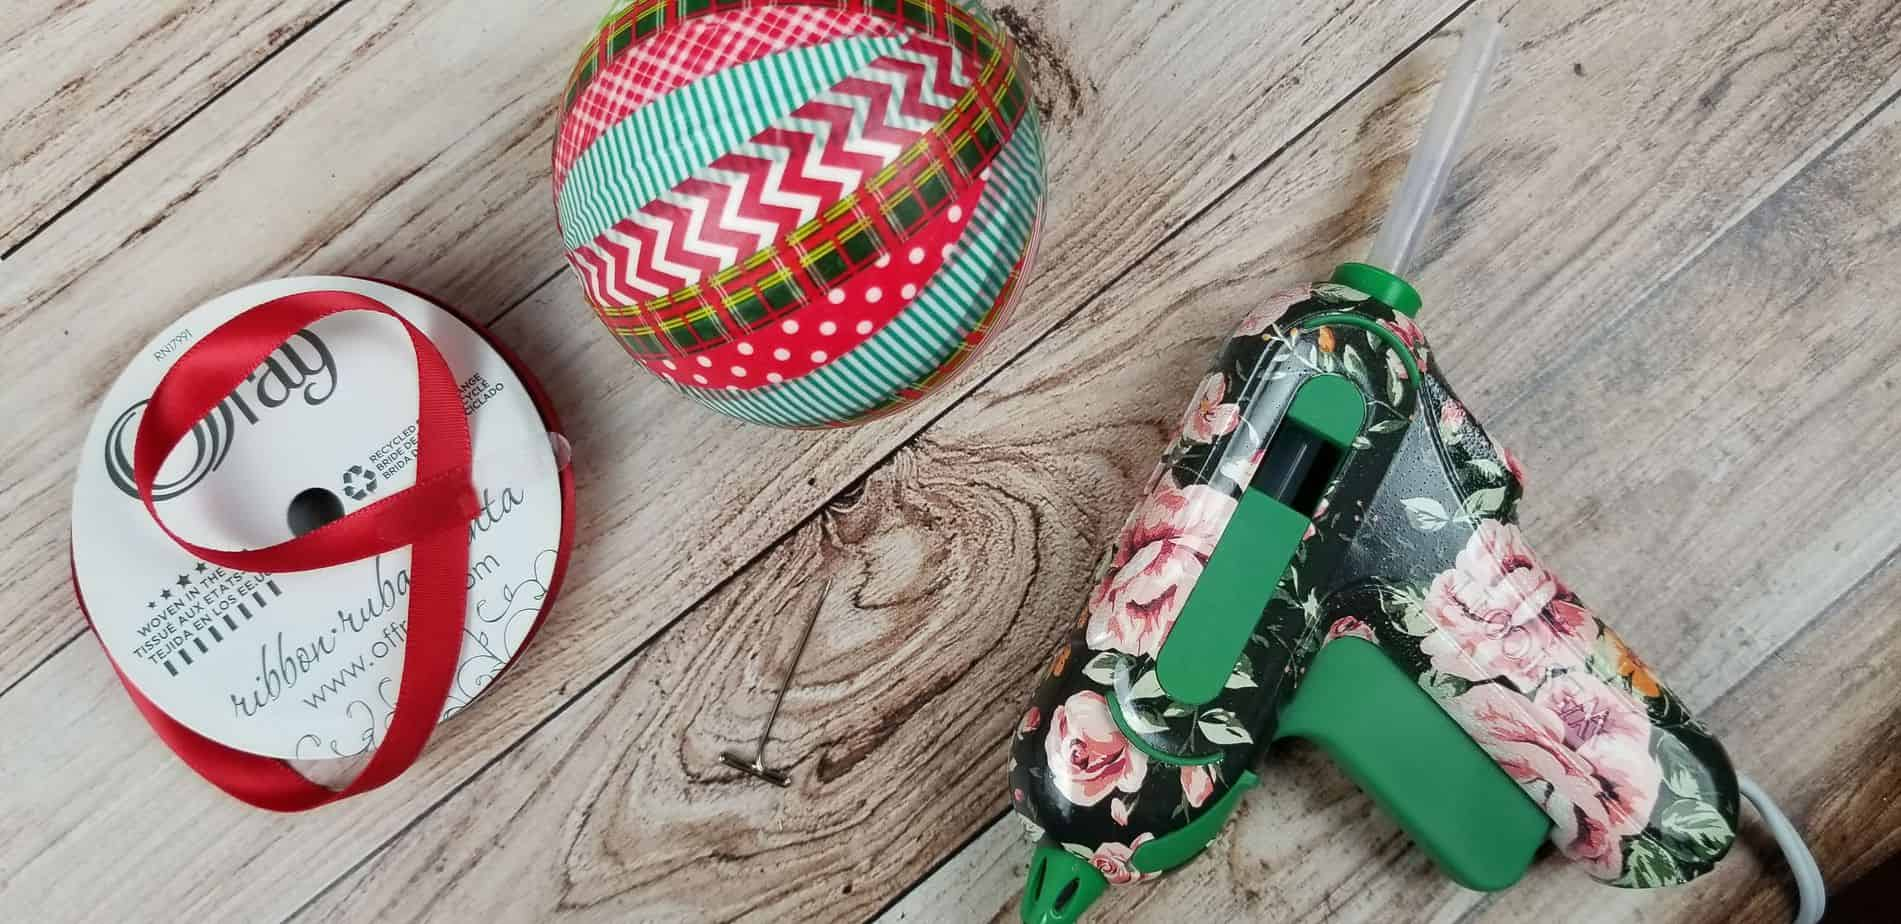 an ornament wrapped in red and green washi tape next to some red ribbon and a hot glue gun on a wooden table